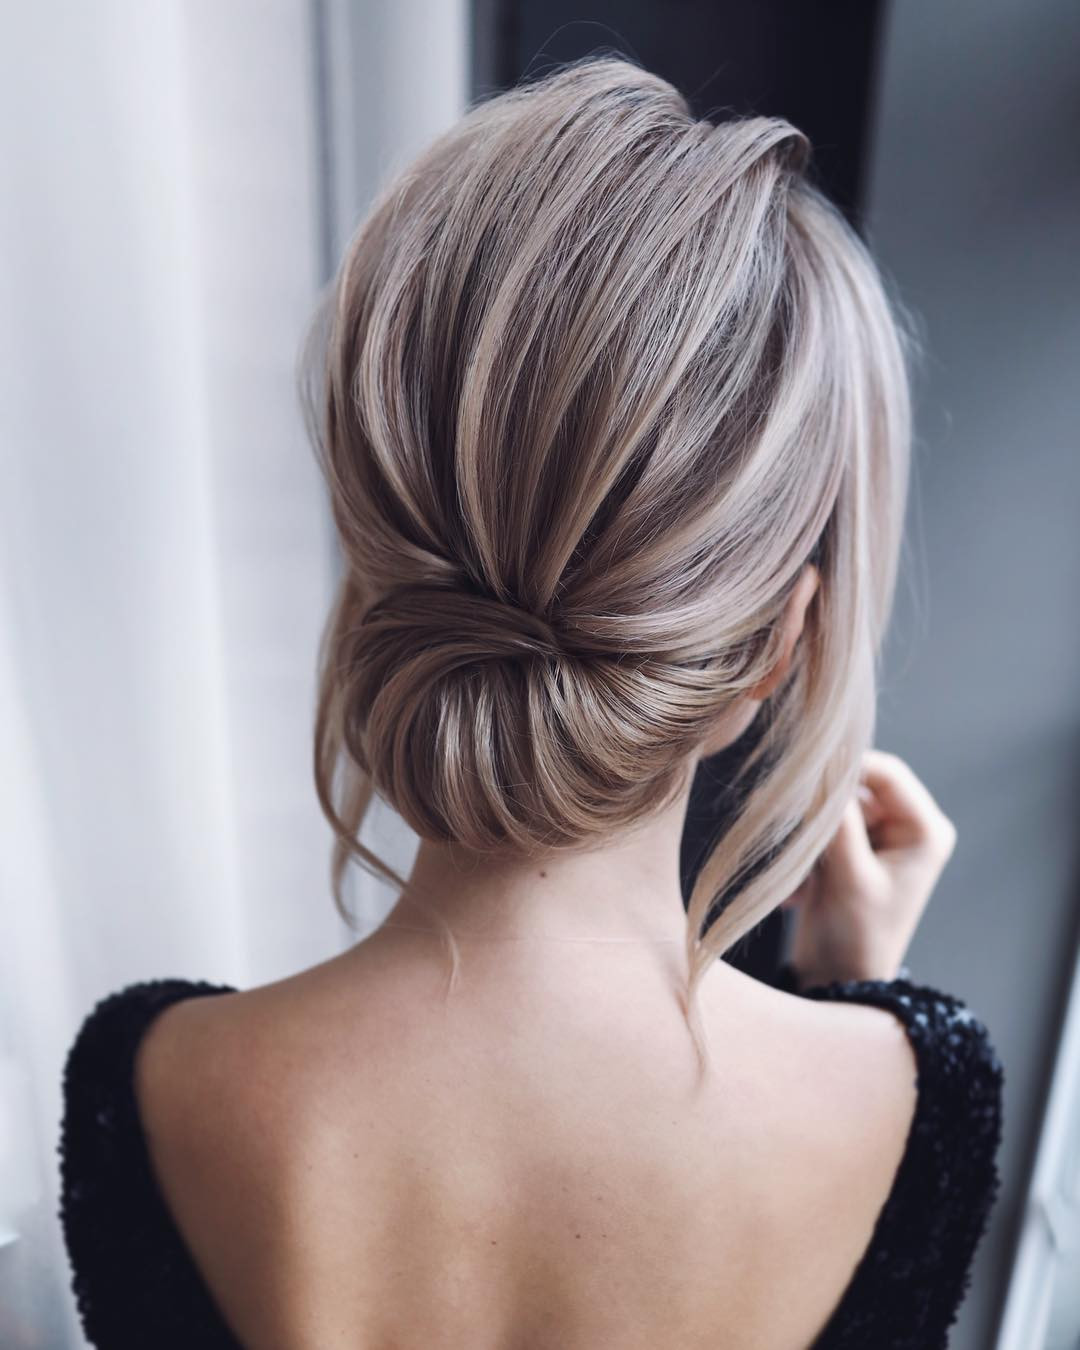 Best ideas about Hairstyle Updo 2019 . Save or Pin 10 Updos for Medium Length Hair Prom & Home ing Now.